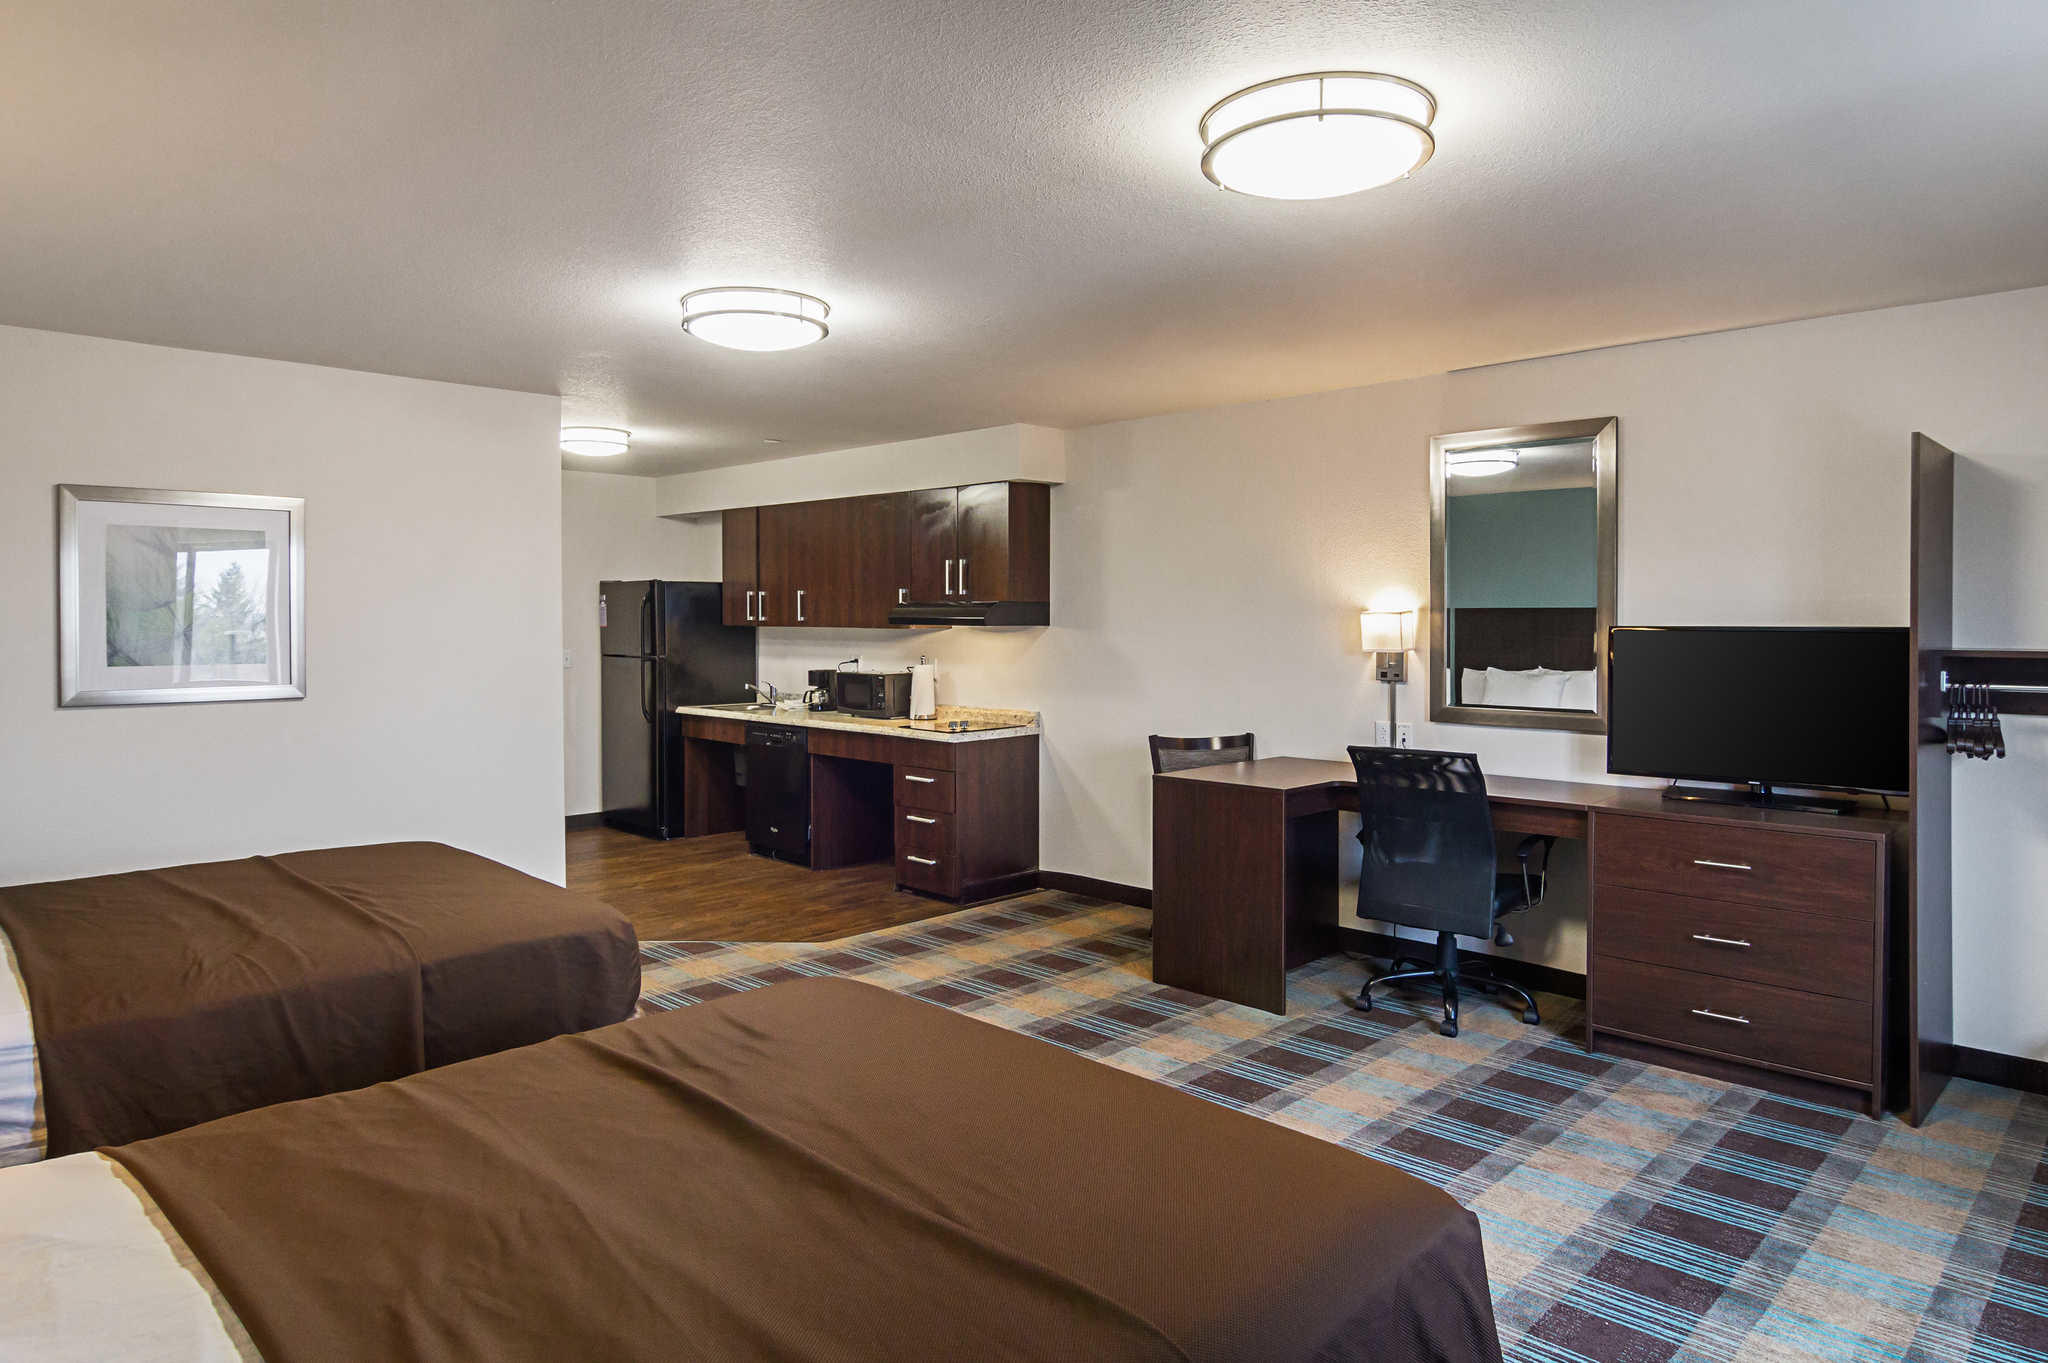 Suburban Extended Stay Hotel image 30